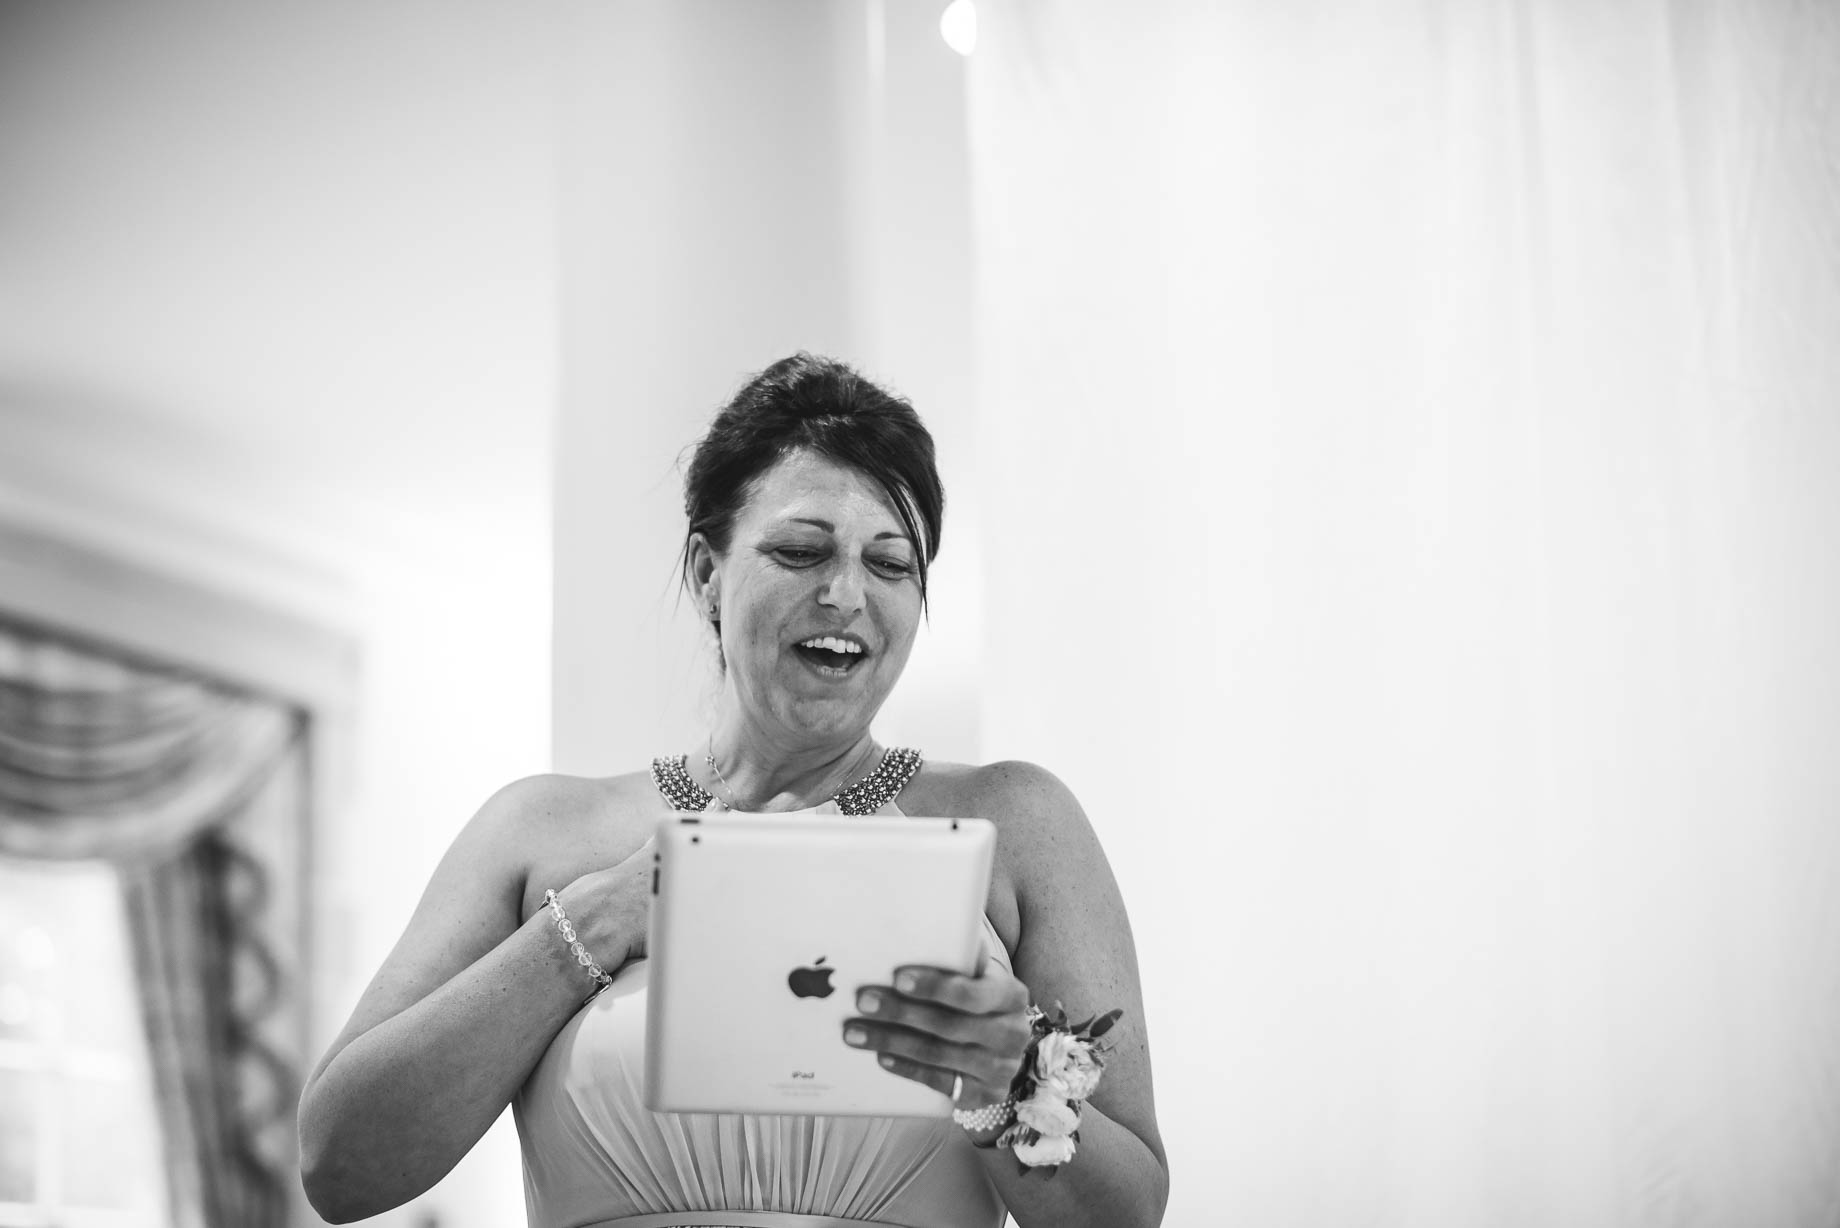 Luton Hoo wedding photography by Guy Collier Photography - Lauren and Gem (144 of 178)